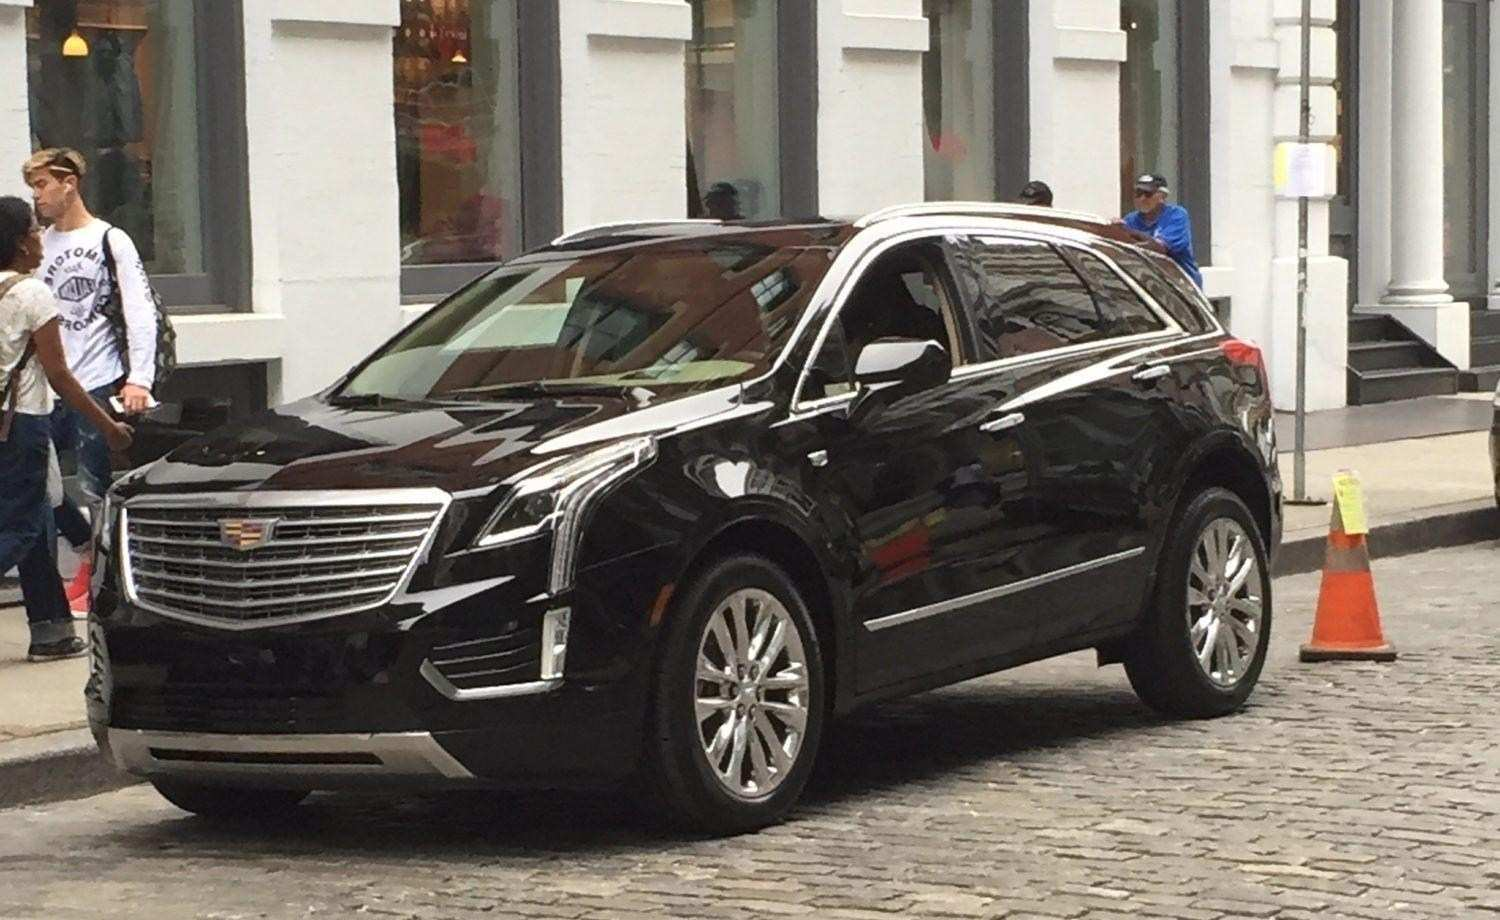 52 Gallery of The Cadillac 2019 Srx Review And Release Date Review by The Cadillac 2019 Srx Review And Release Date